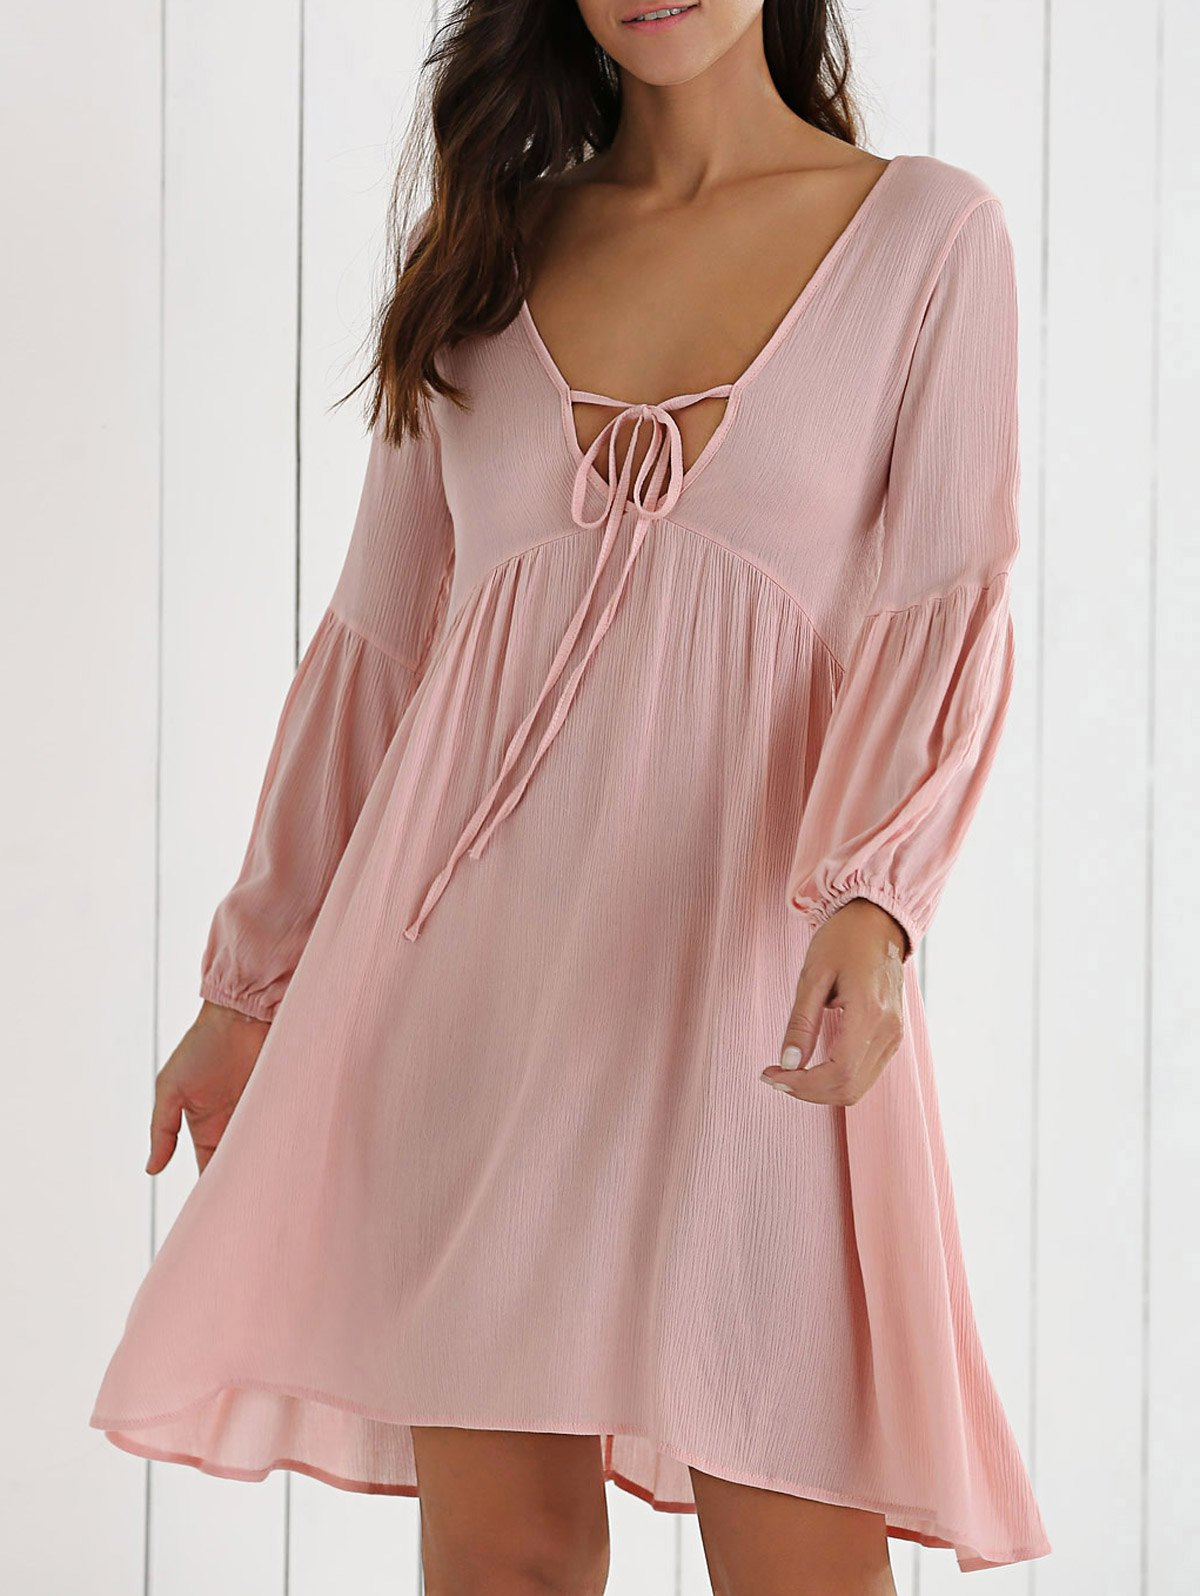 Plunging Neck Lantern Sleeve Solid Color Dress